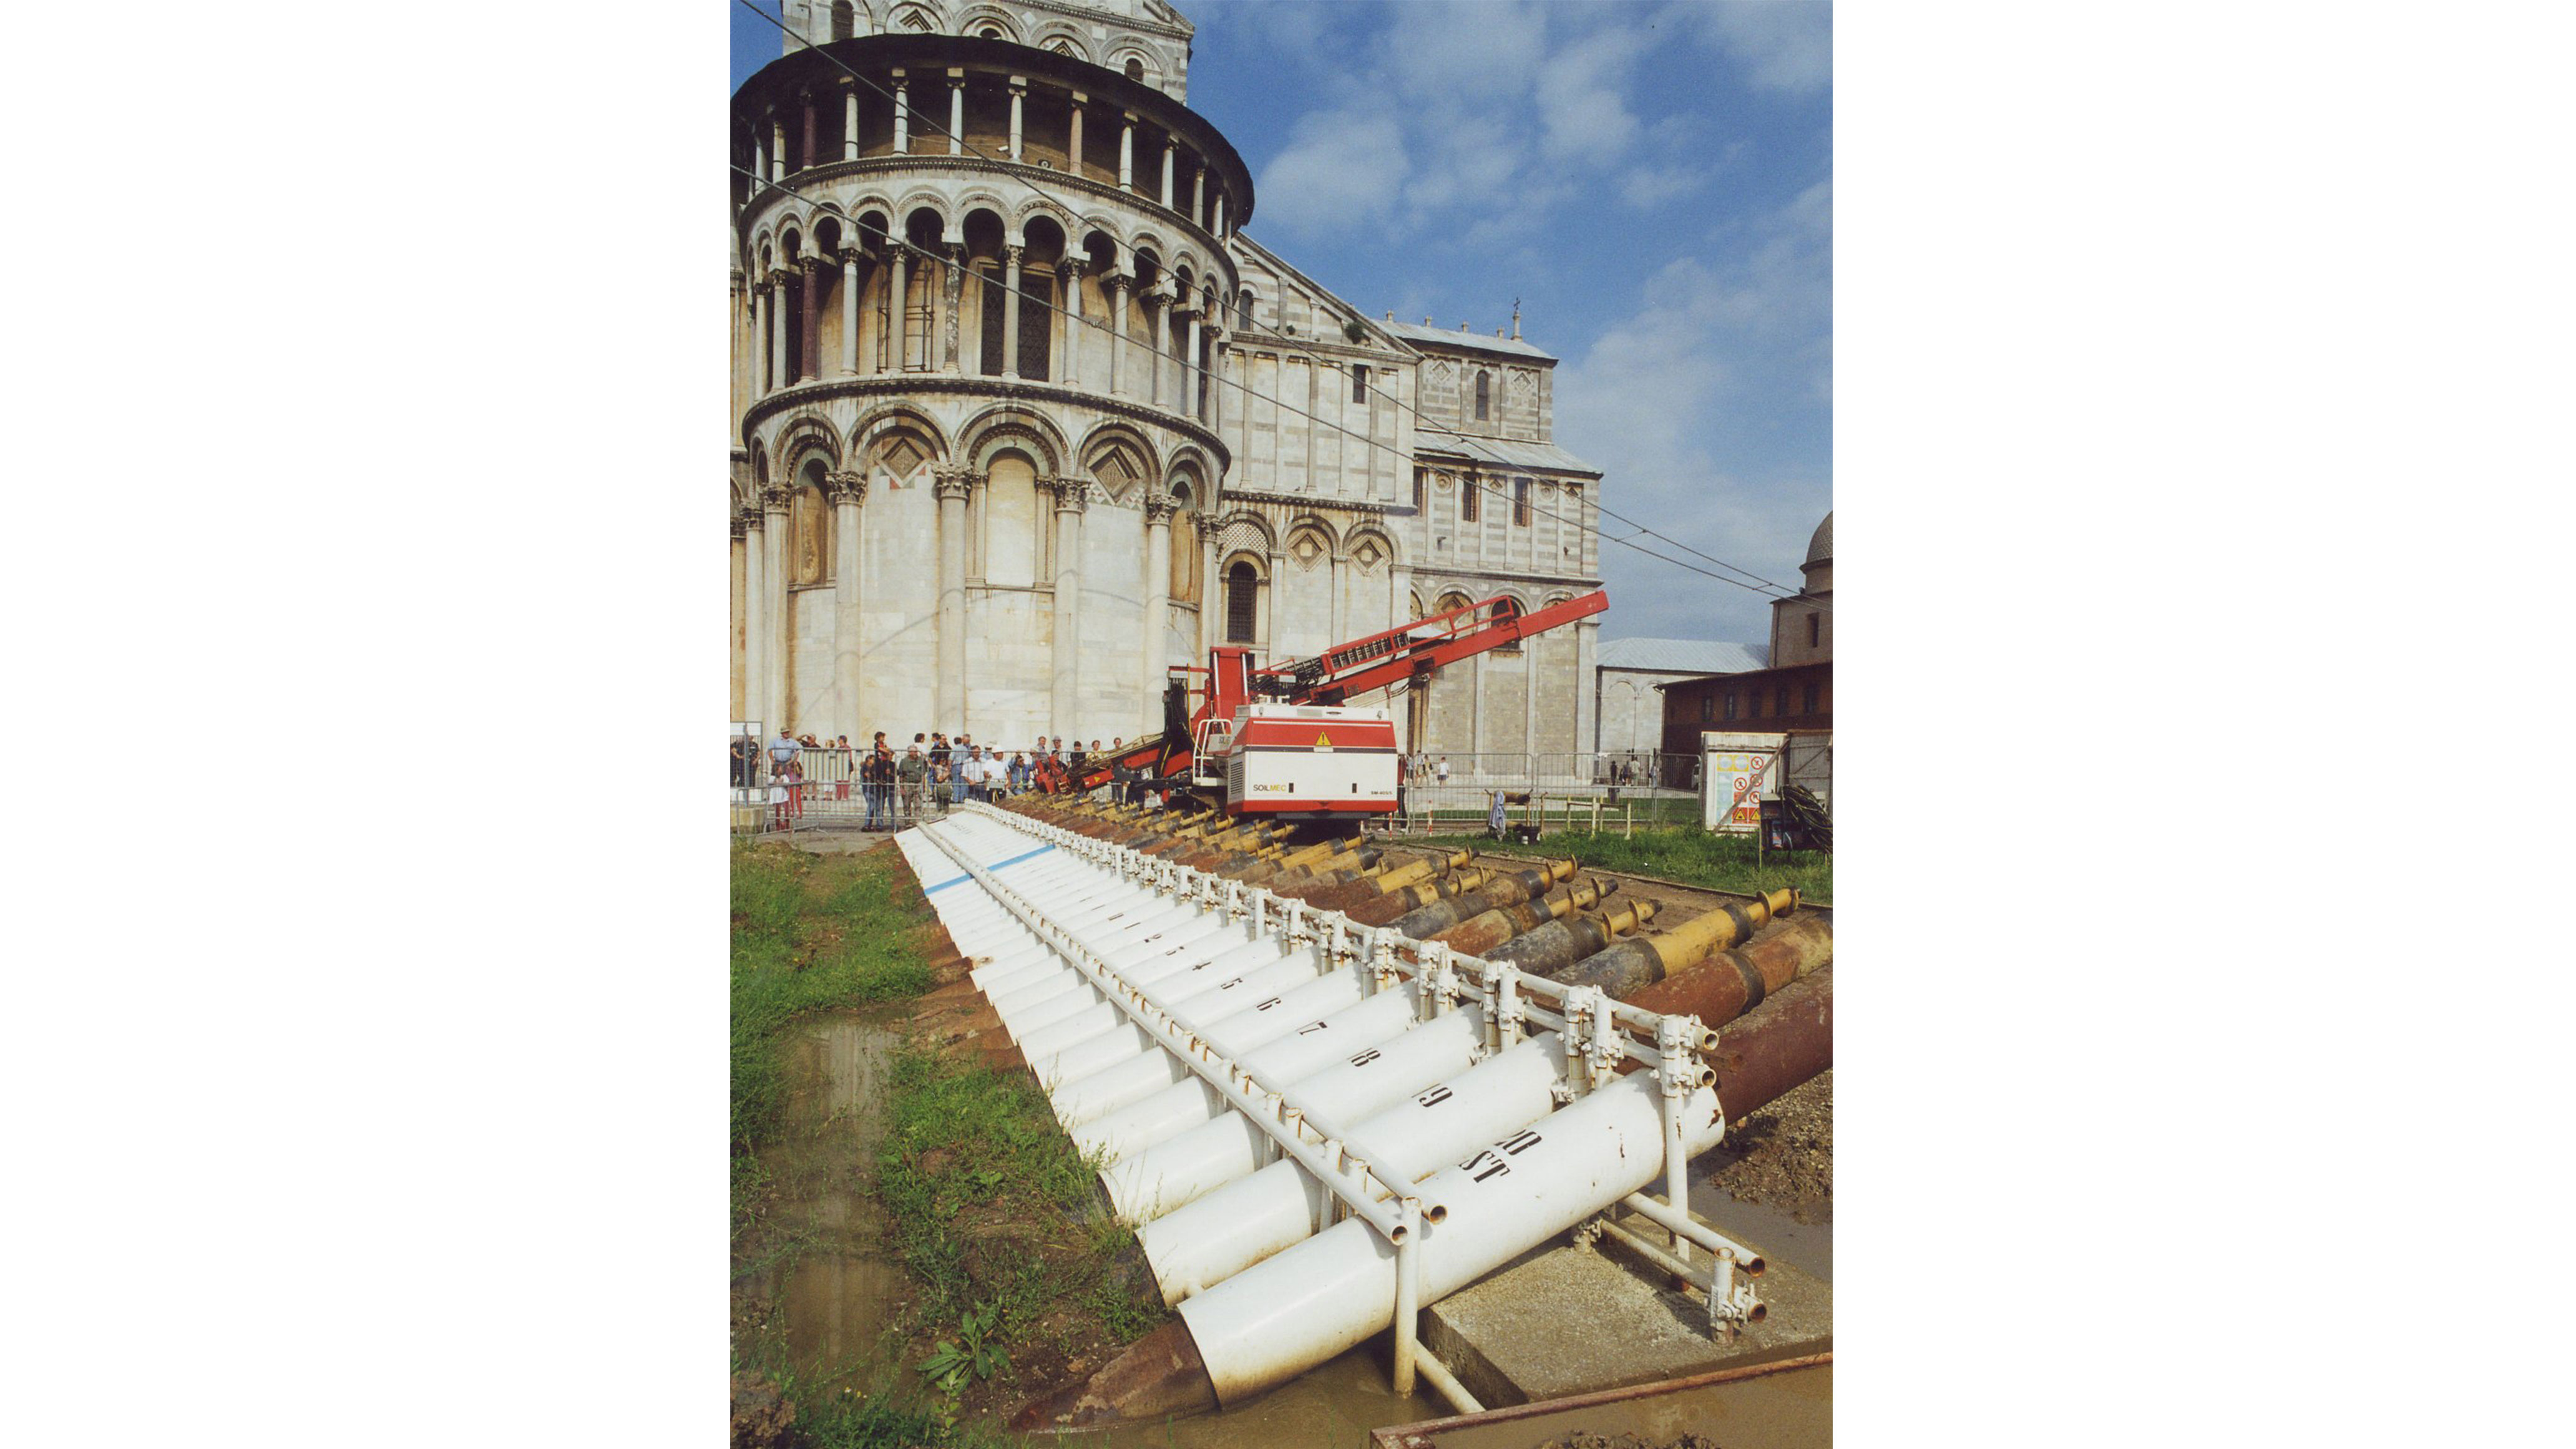 The restoration of the LEANING TOWER OF PISA | Trevi 4